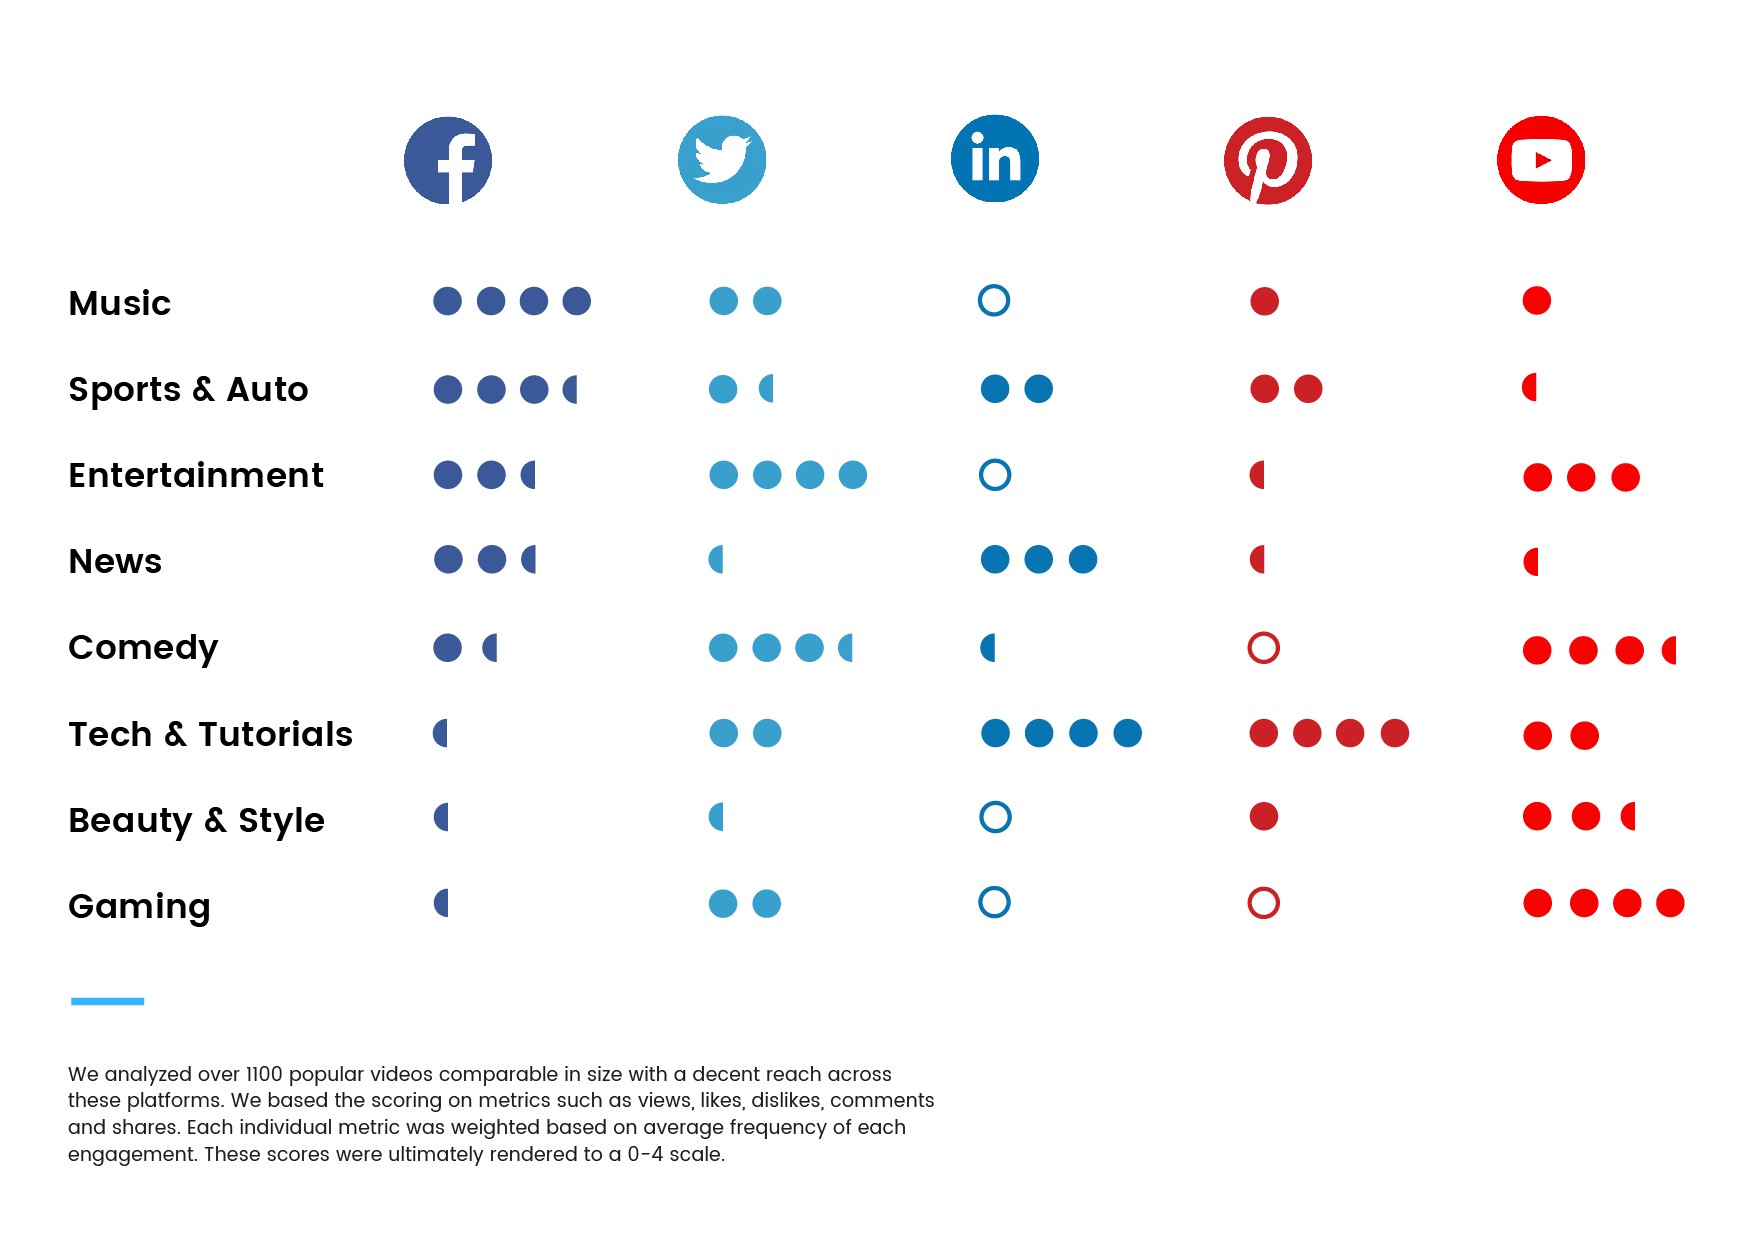 Genres on Social Media: What are they watching? - DIVIMOVE